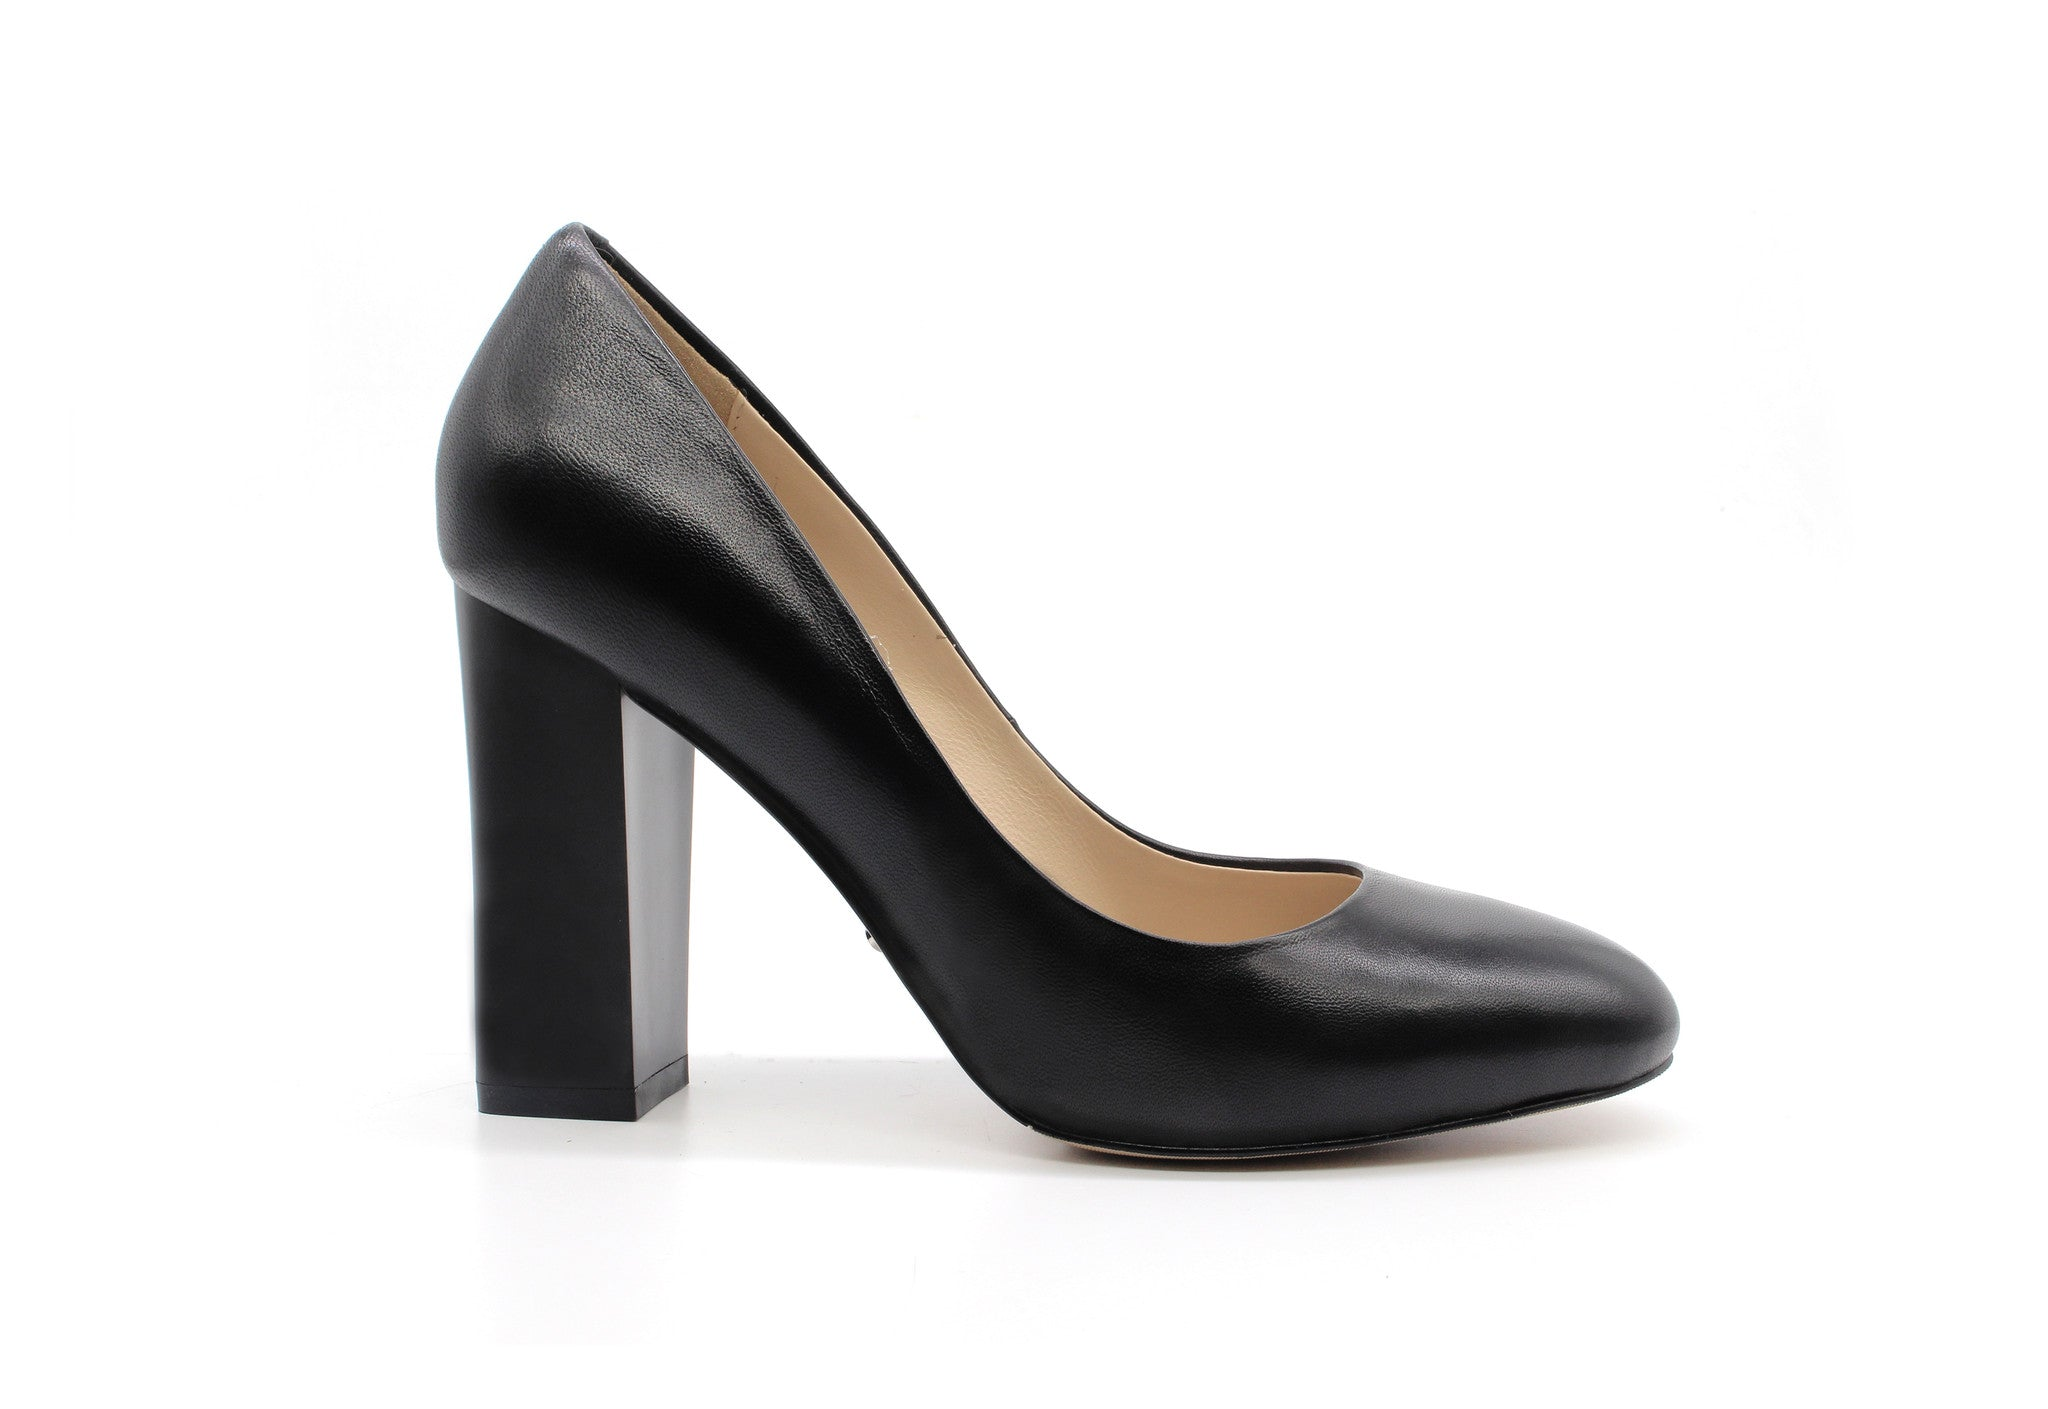 d94d505ee0 3 Inch Heels - Black Leather Block Heels - Angelina Voloshina - AV Heels - 1  ...